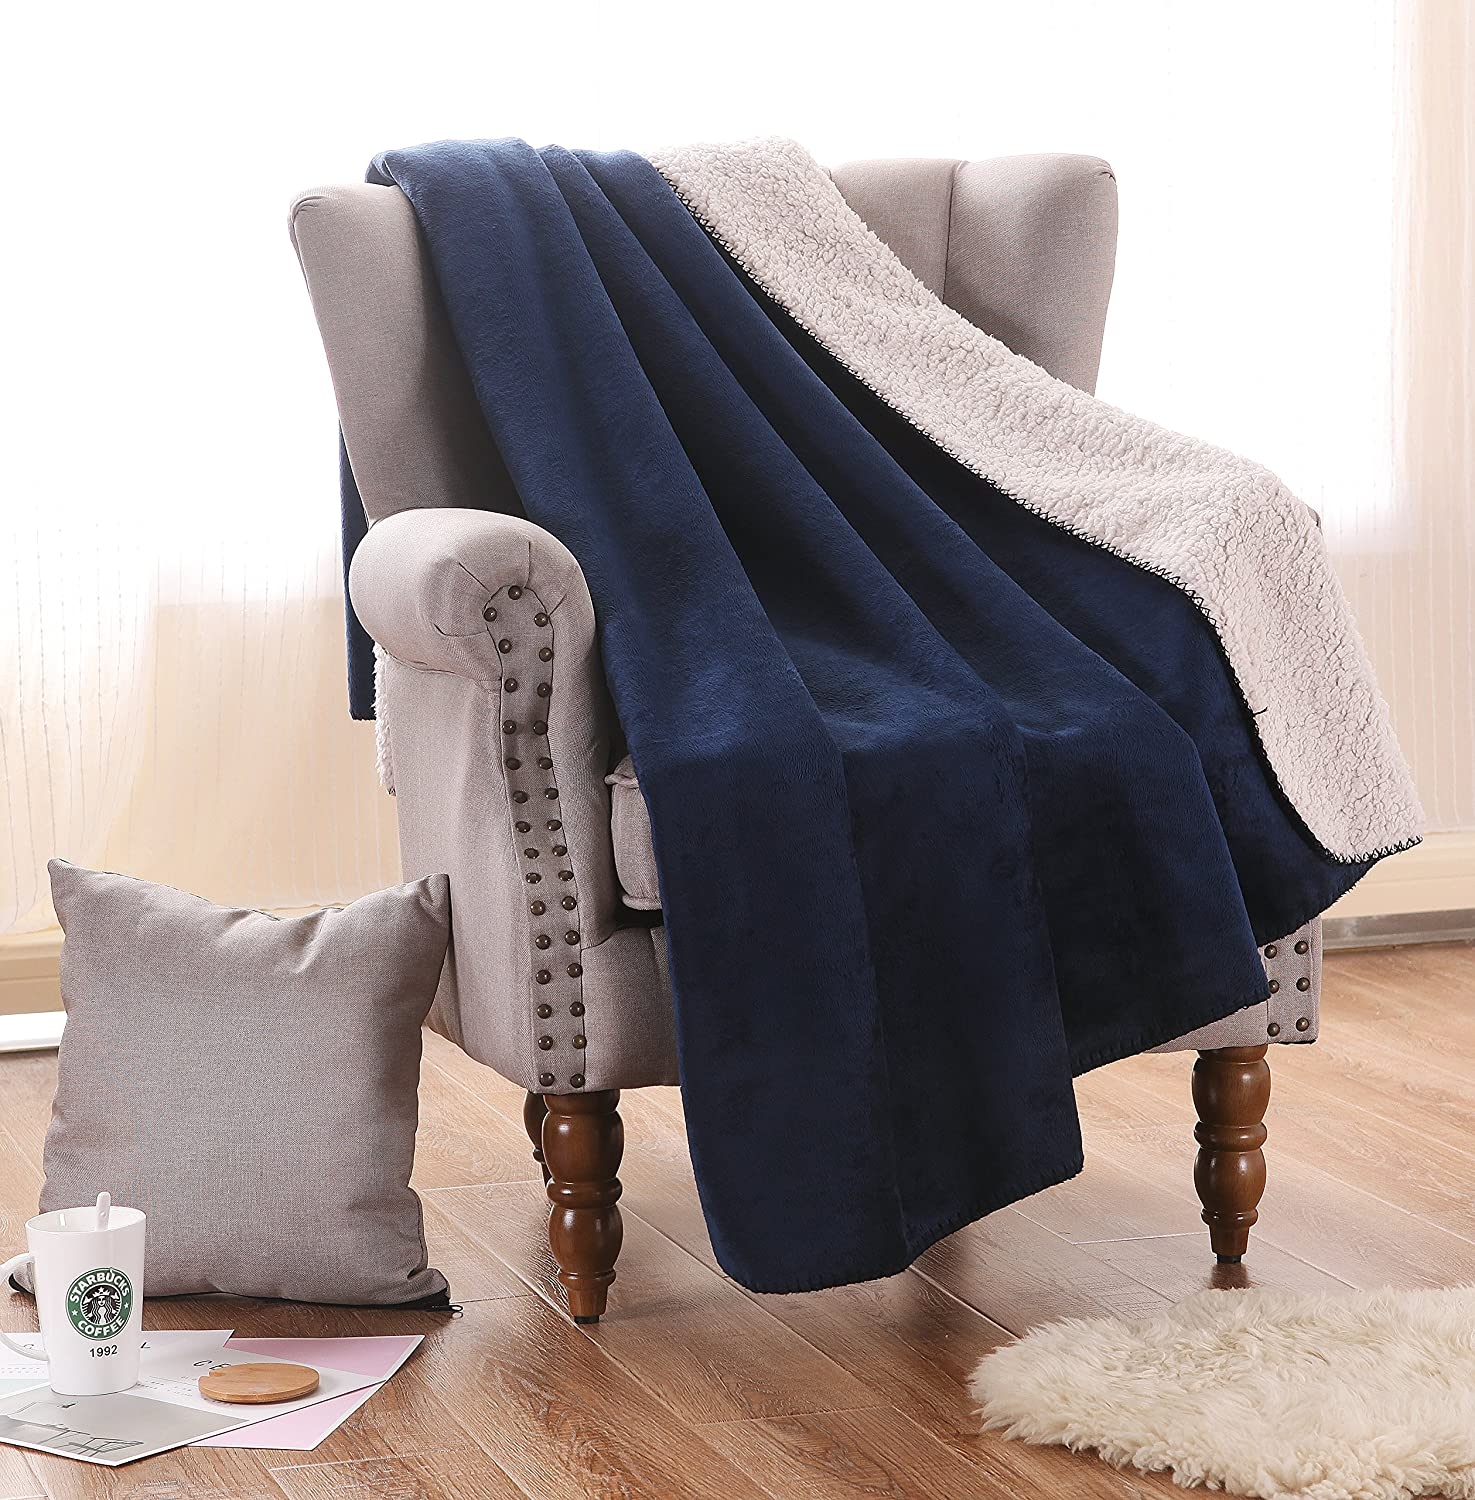 Sherpa Throw Blankets Super Sale – Ease Bedding with Style